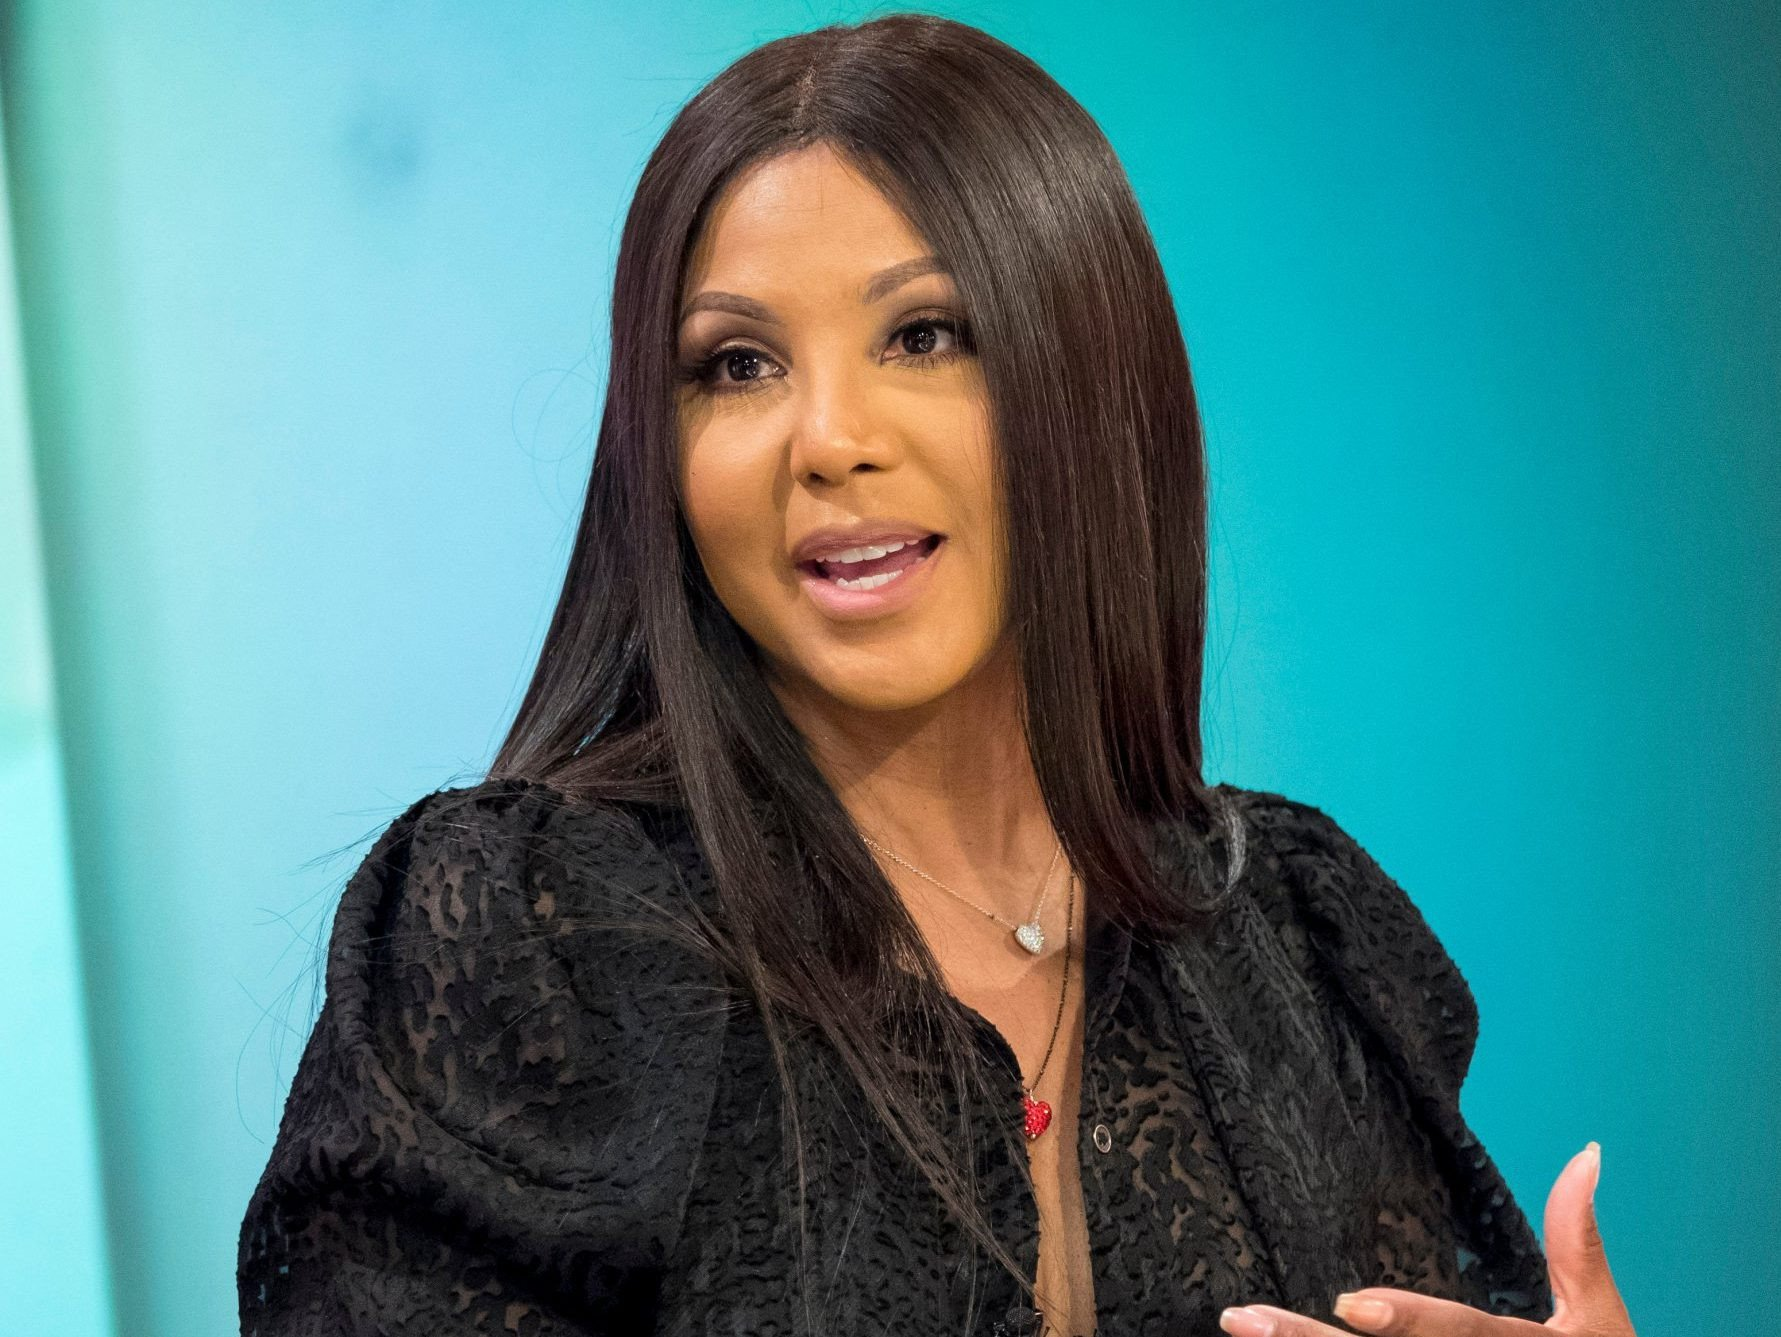 Toni Braxton Celebrates A Musical Achievement – Check Out The Video She Shared